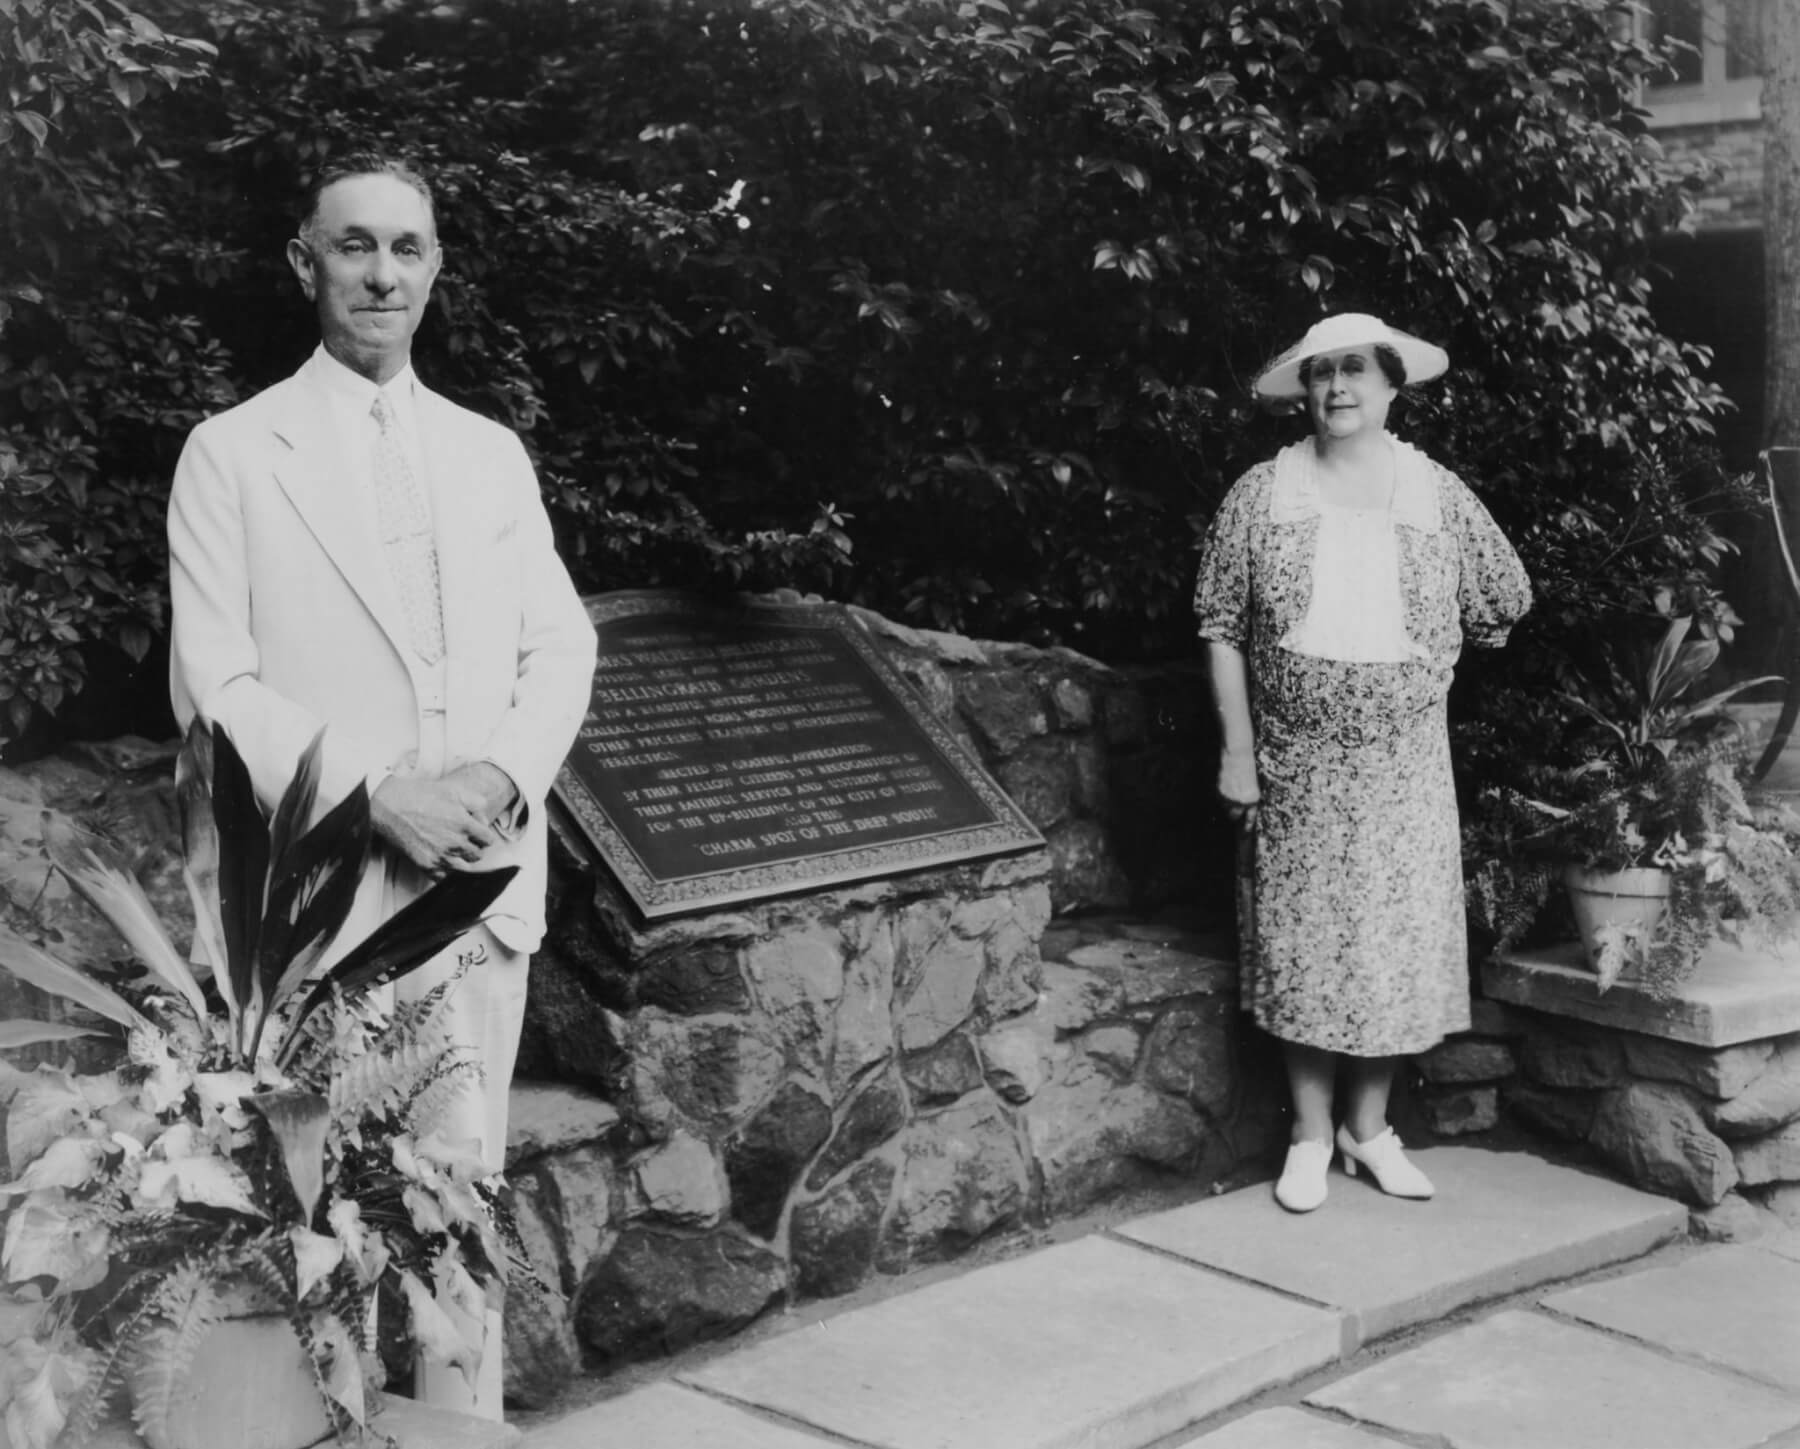 Bellingrath Gardens and Home marks 83rd anniversary